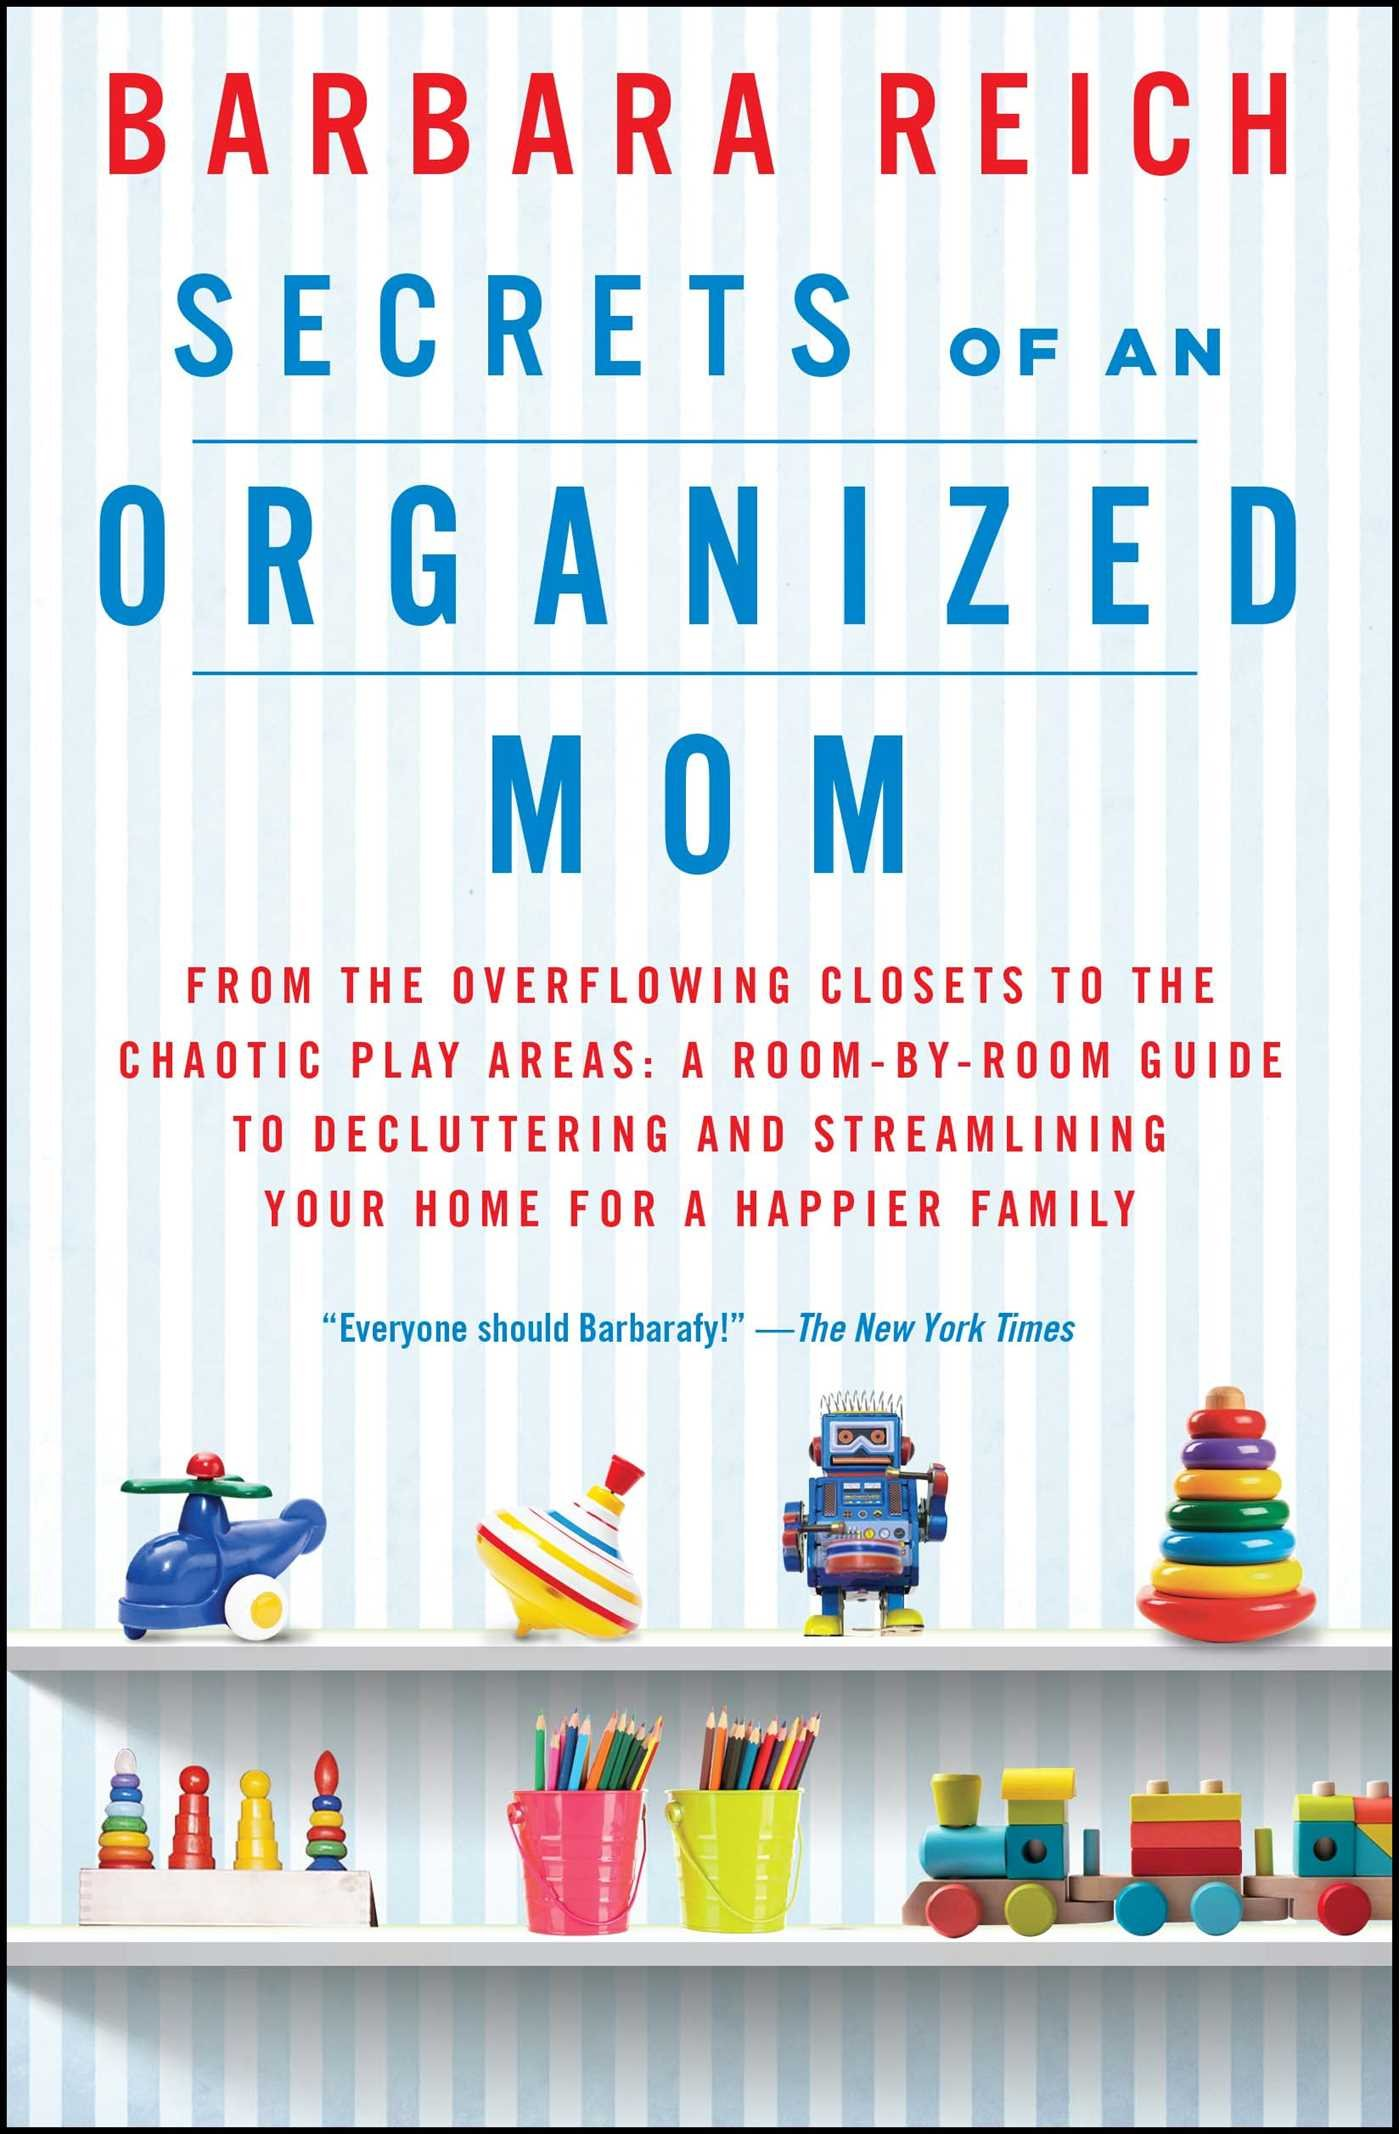 Download Secrets of an Organized Mom: From the Overflowing Closets to the Chaotic Play Areas: A Room-by-Room Guide to Decluttering and Streamlining Your Home for a Happier Family PDF